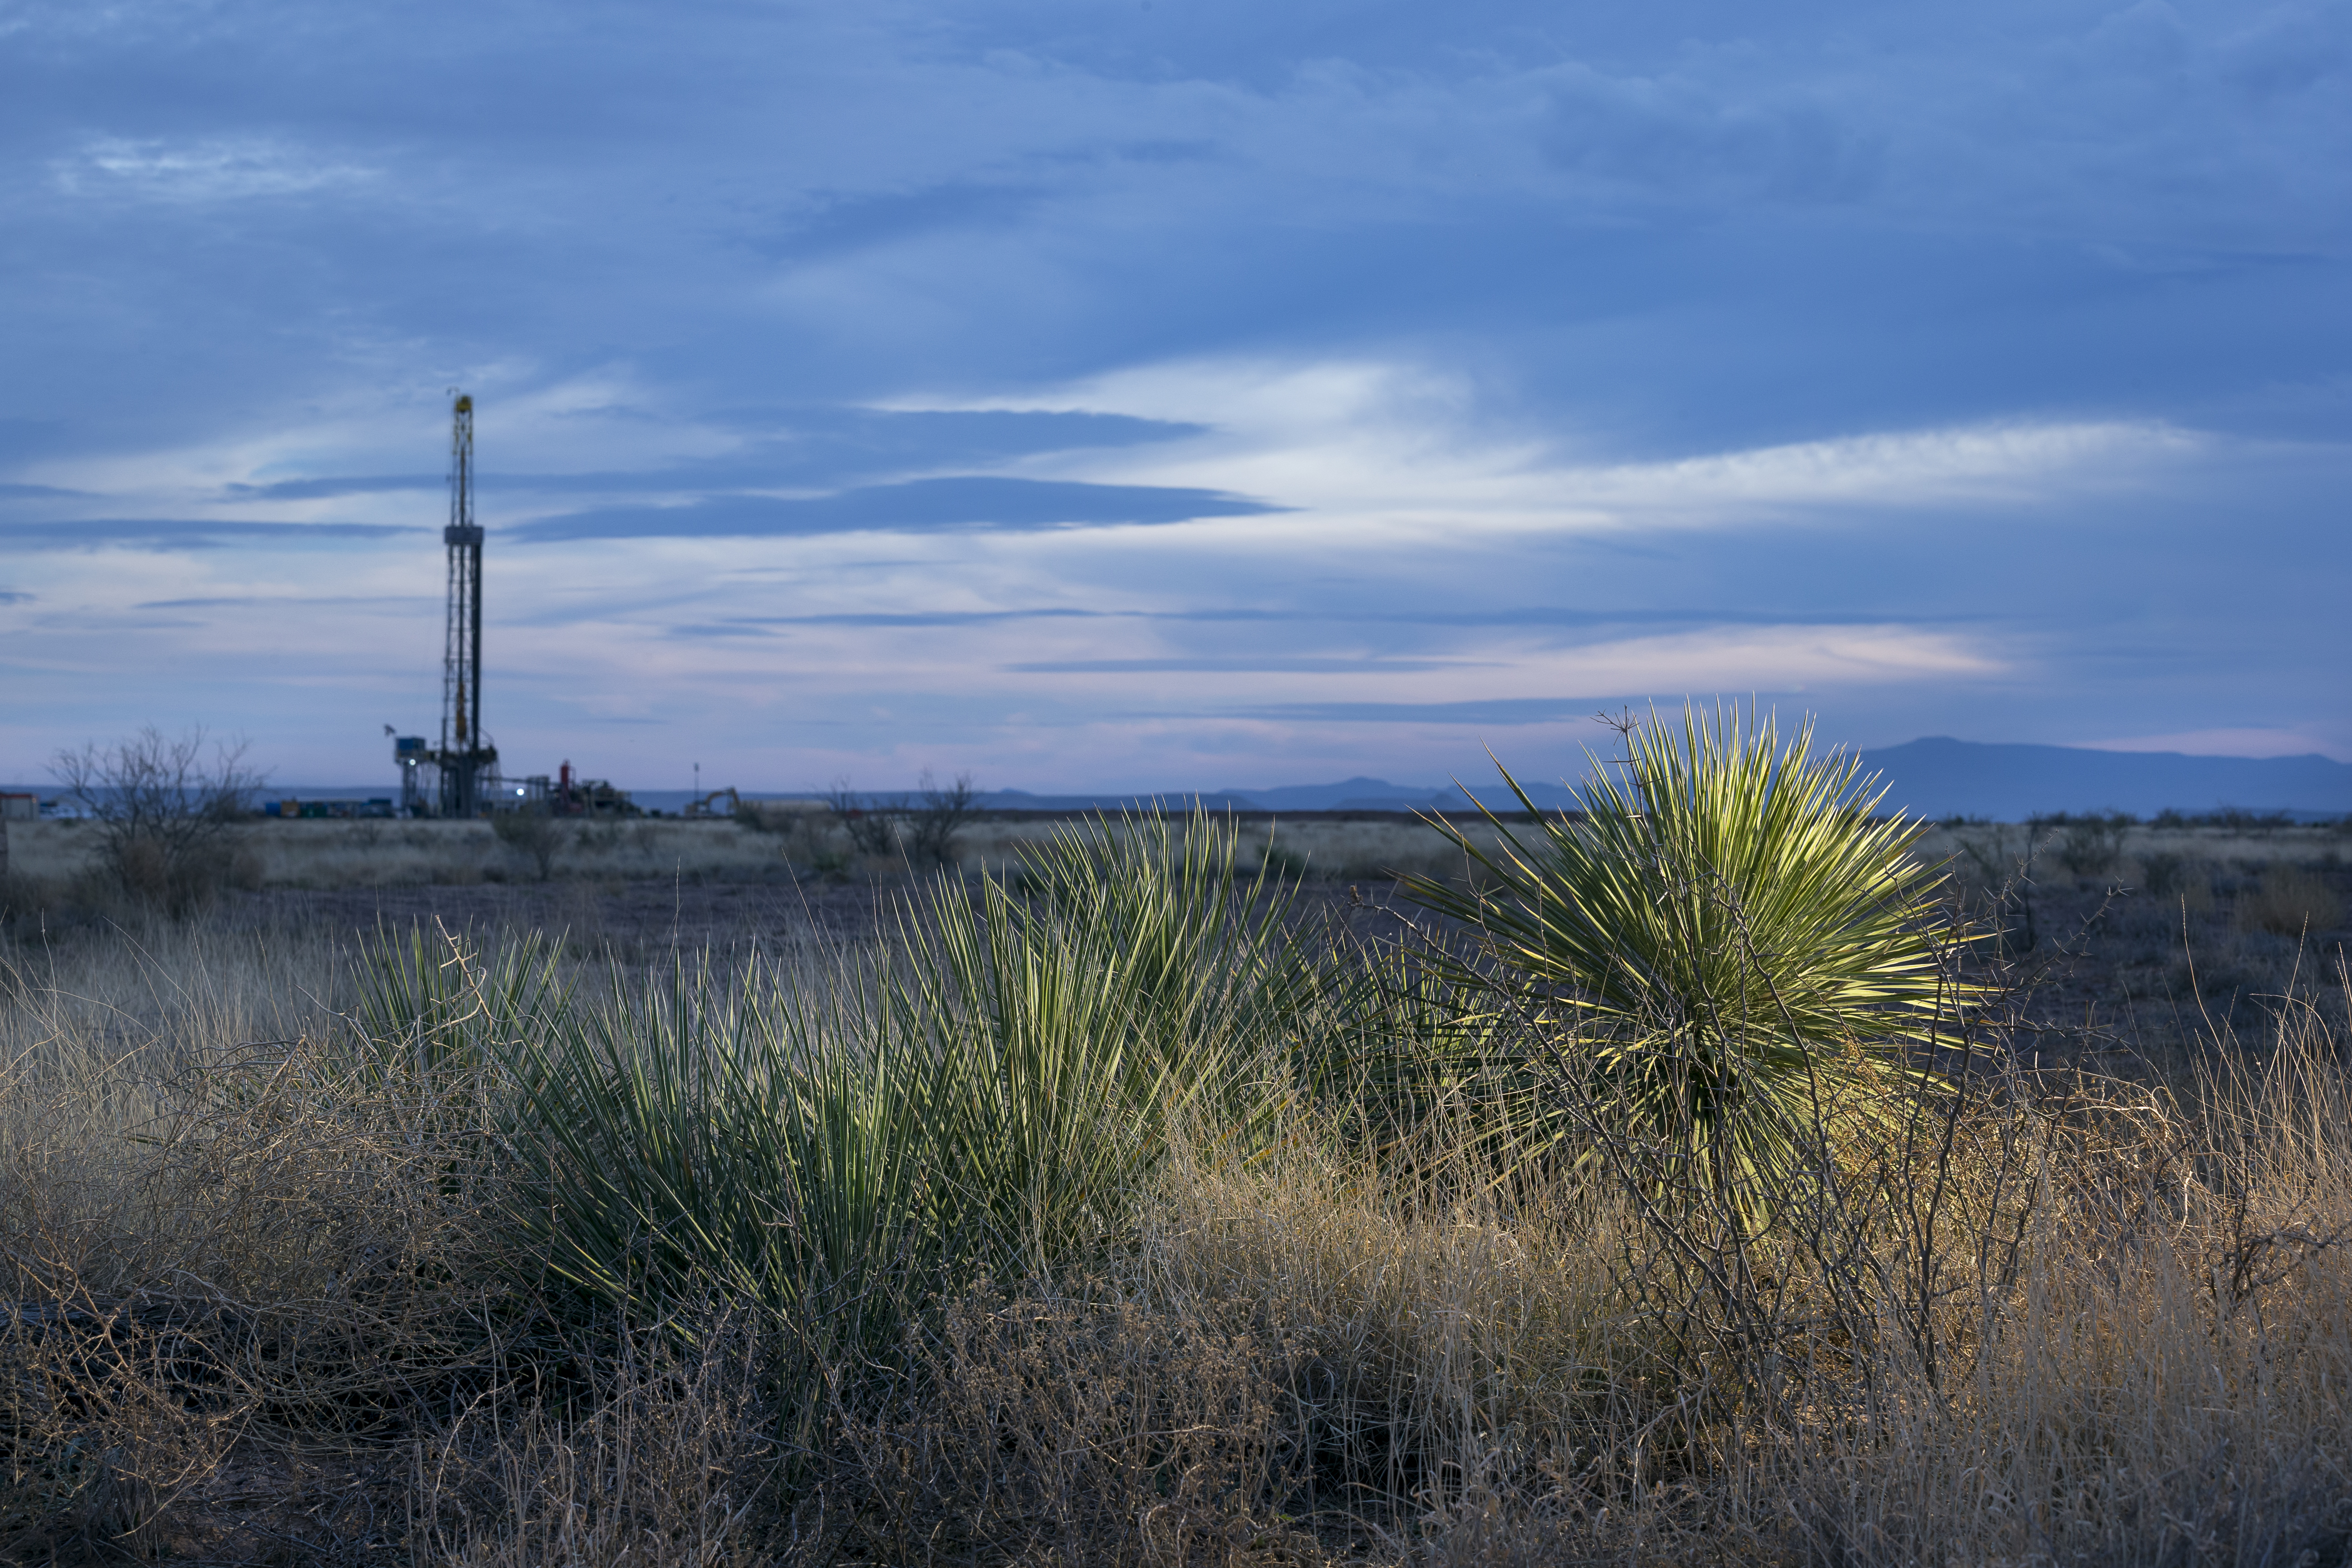 Concho Resources is one of the largest unconventional shale producers in the Permian Basin, with operations focused on acquiring, exploring, developing and producing oil and natural gas resources. (Source: Concho Resources)